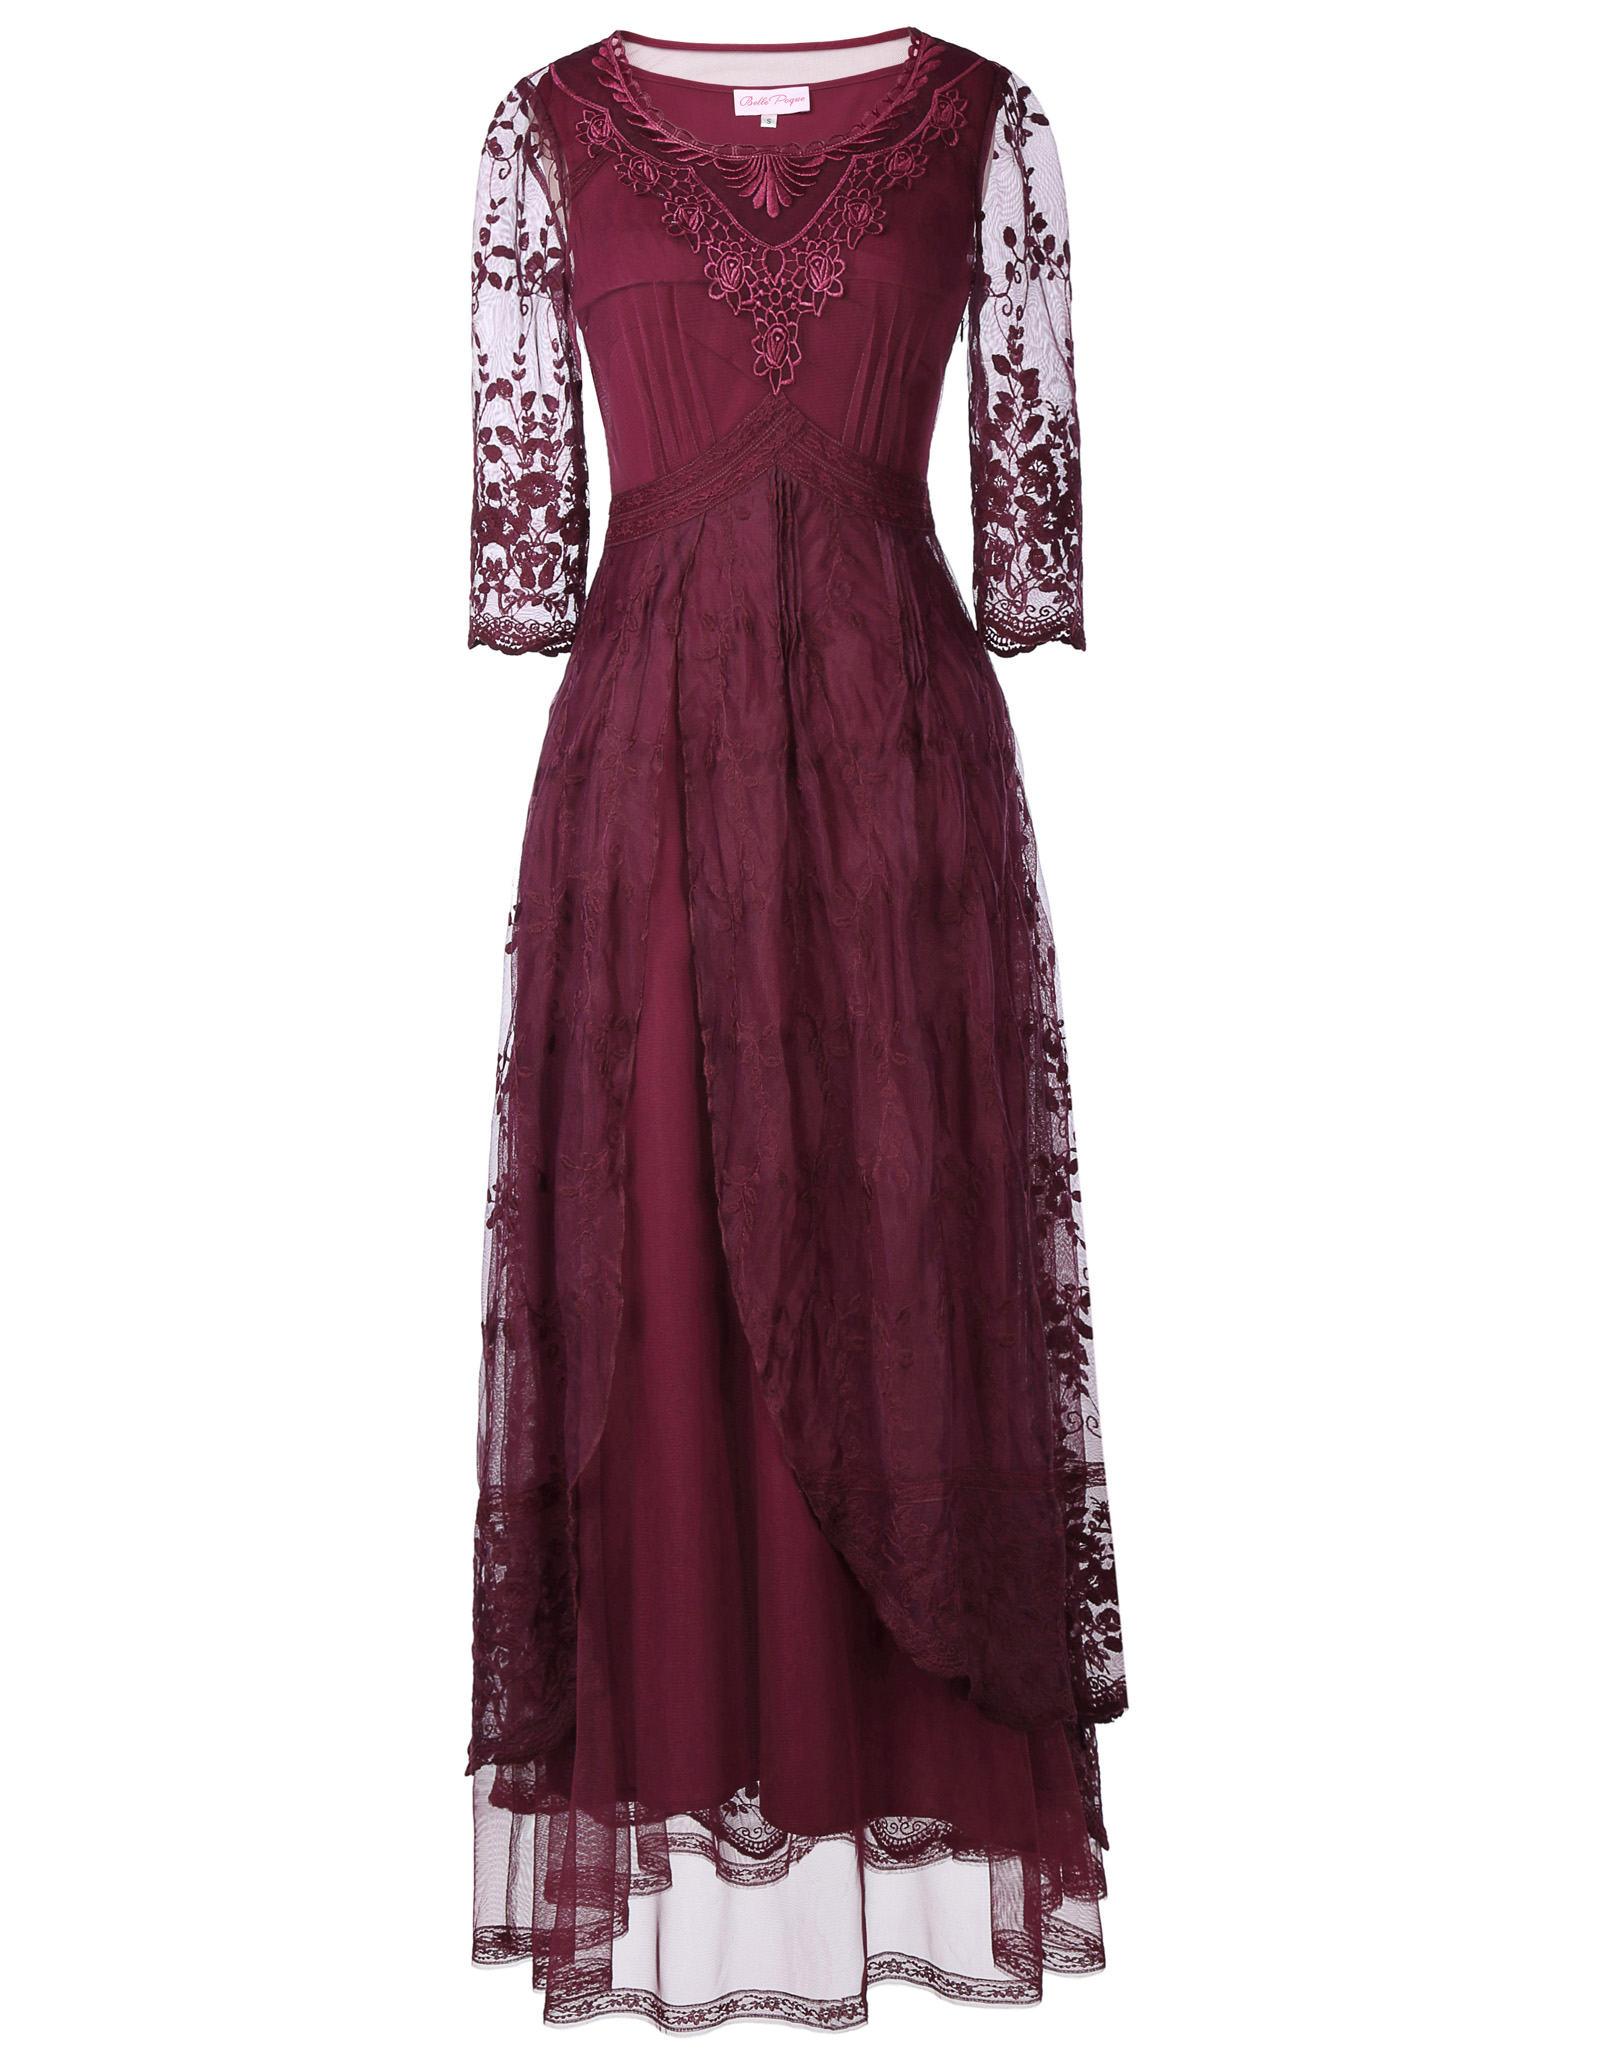 Belle Poque Womens Retro Victorian 60s Long Maxi Prom Evening Party Dress